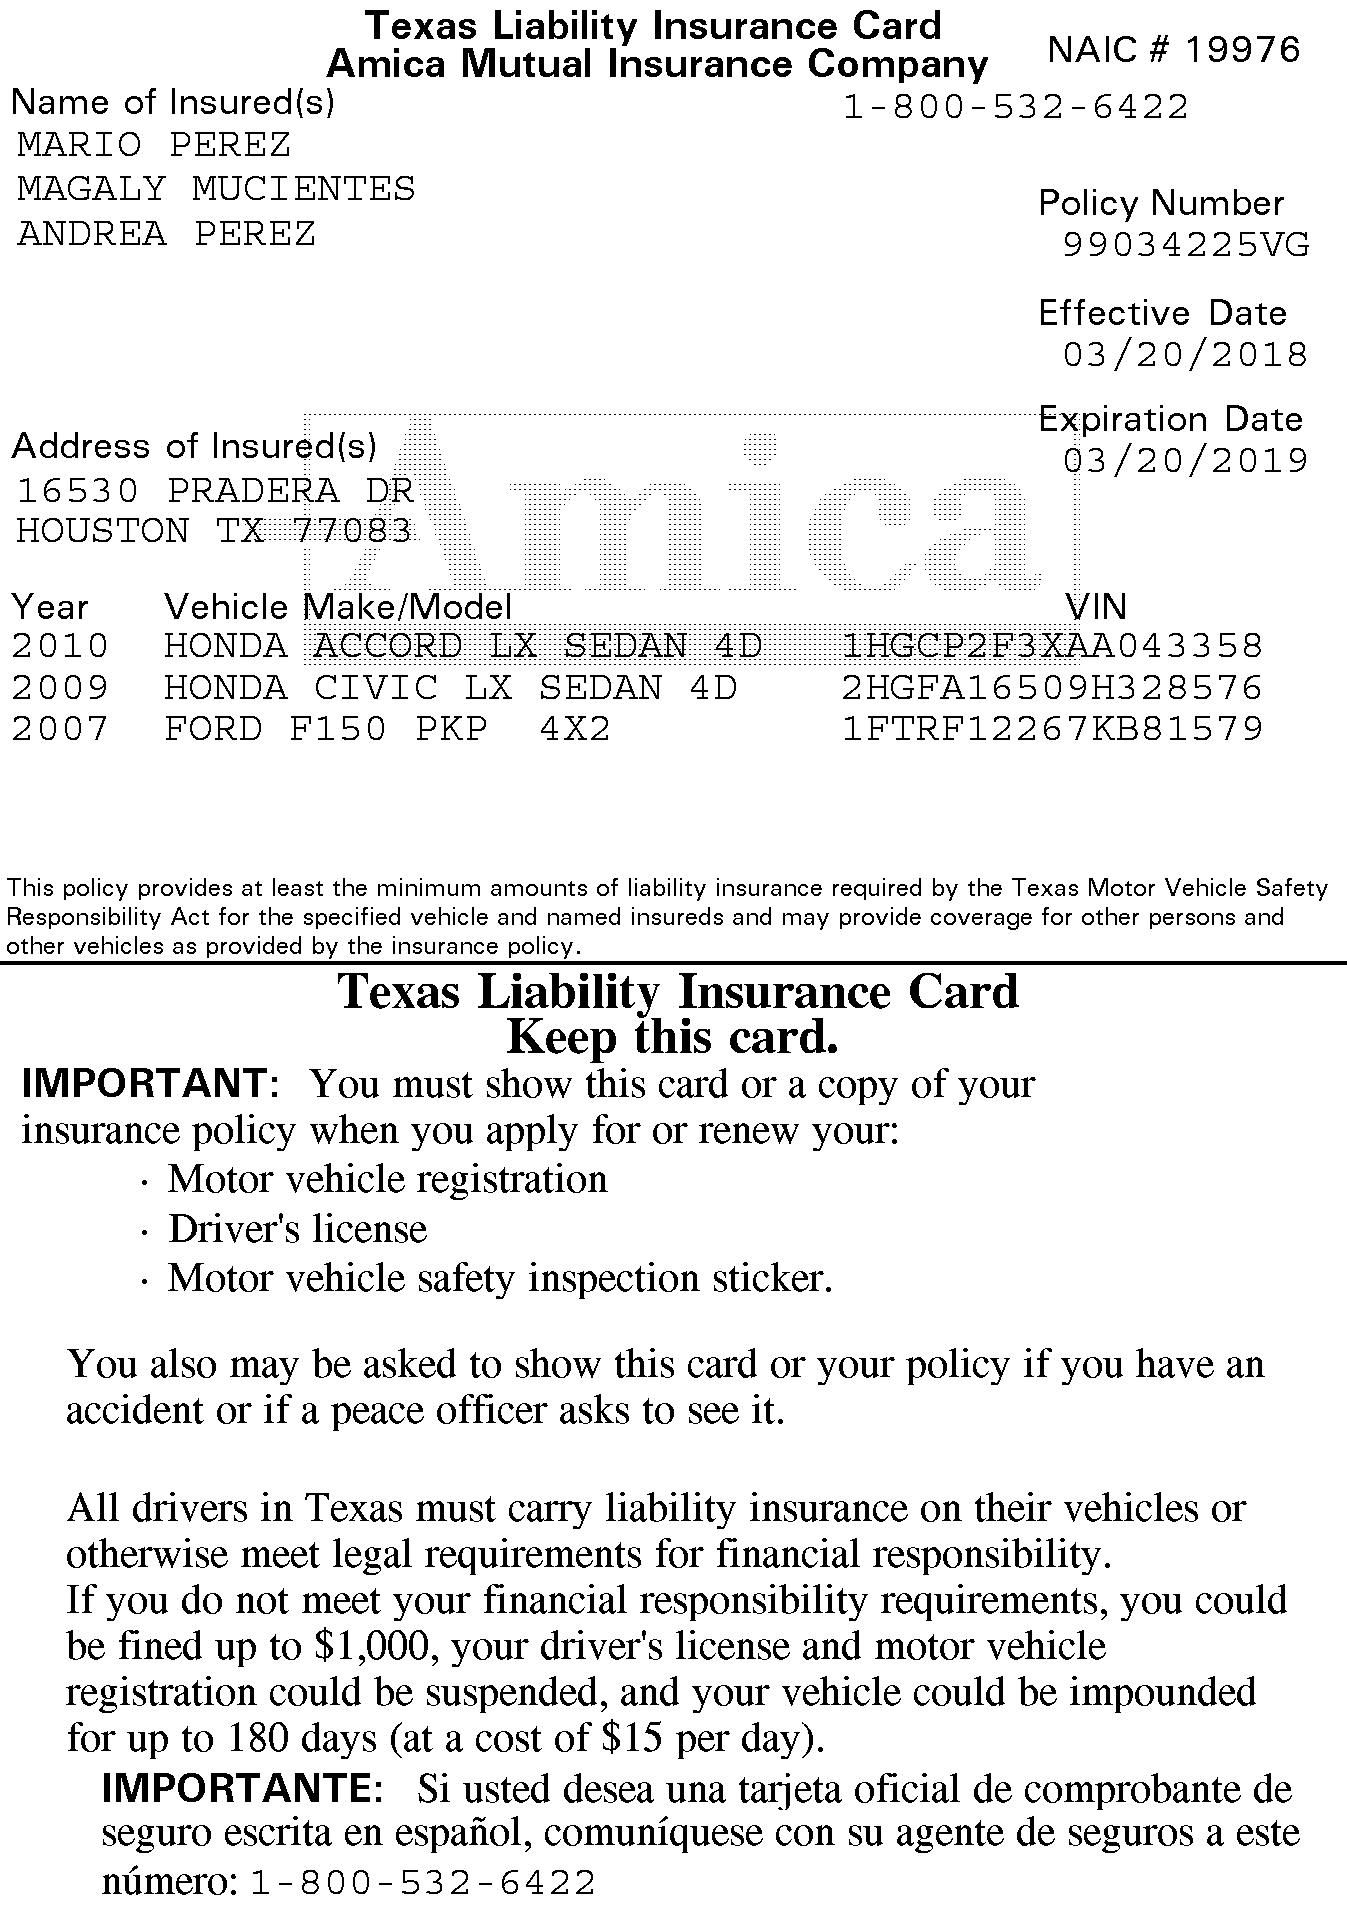 Amica Insurance Insurance Identification Card